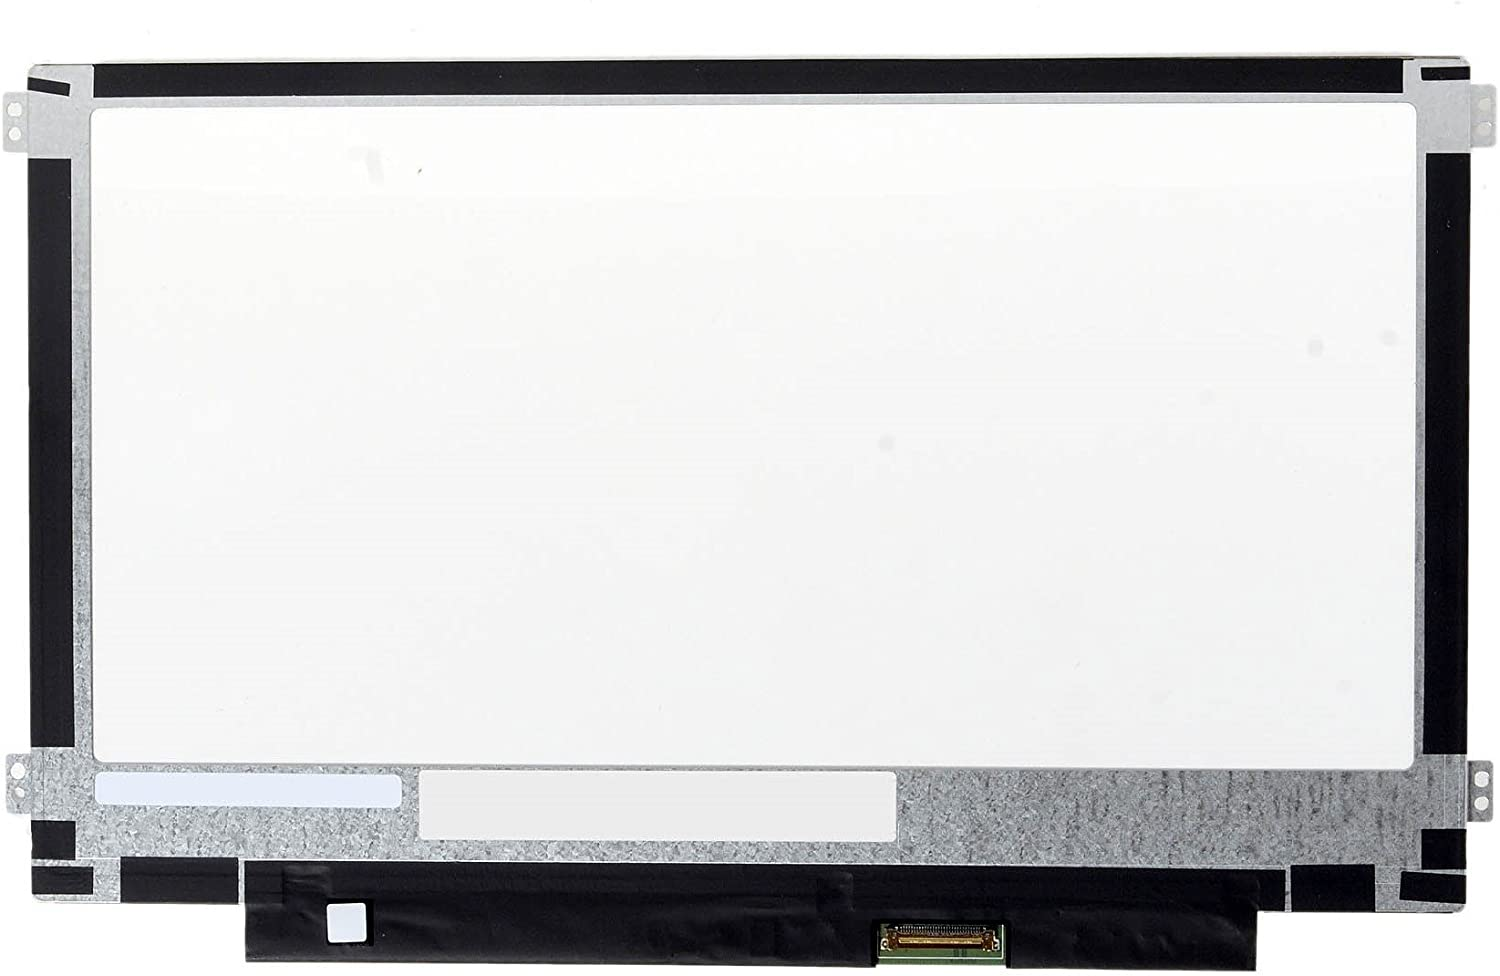 Acer Chromebook C720 New 11.6-Inch WXGA HD LED LCD Replacement Screen 30PIN Matte Fits: C720-2848, C720-2103, C720-2420, C720-2800, C720-2802, C720-2844